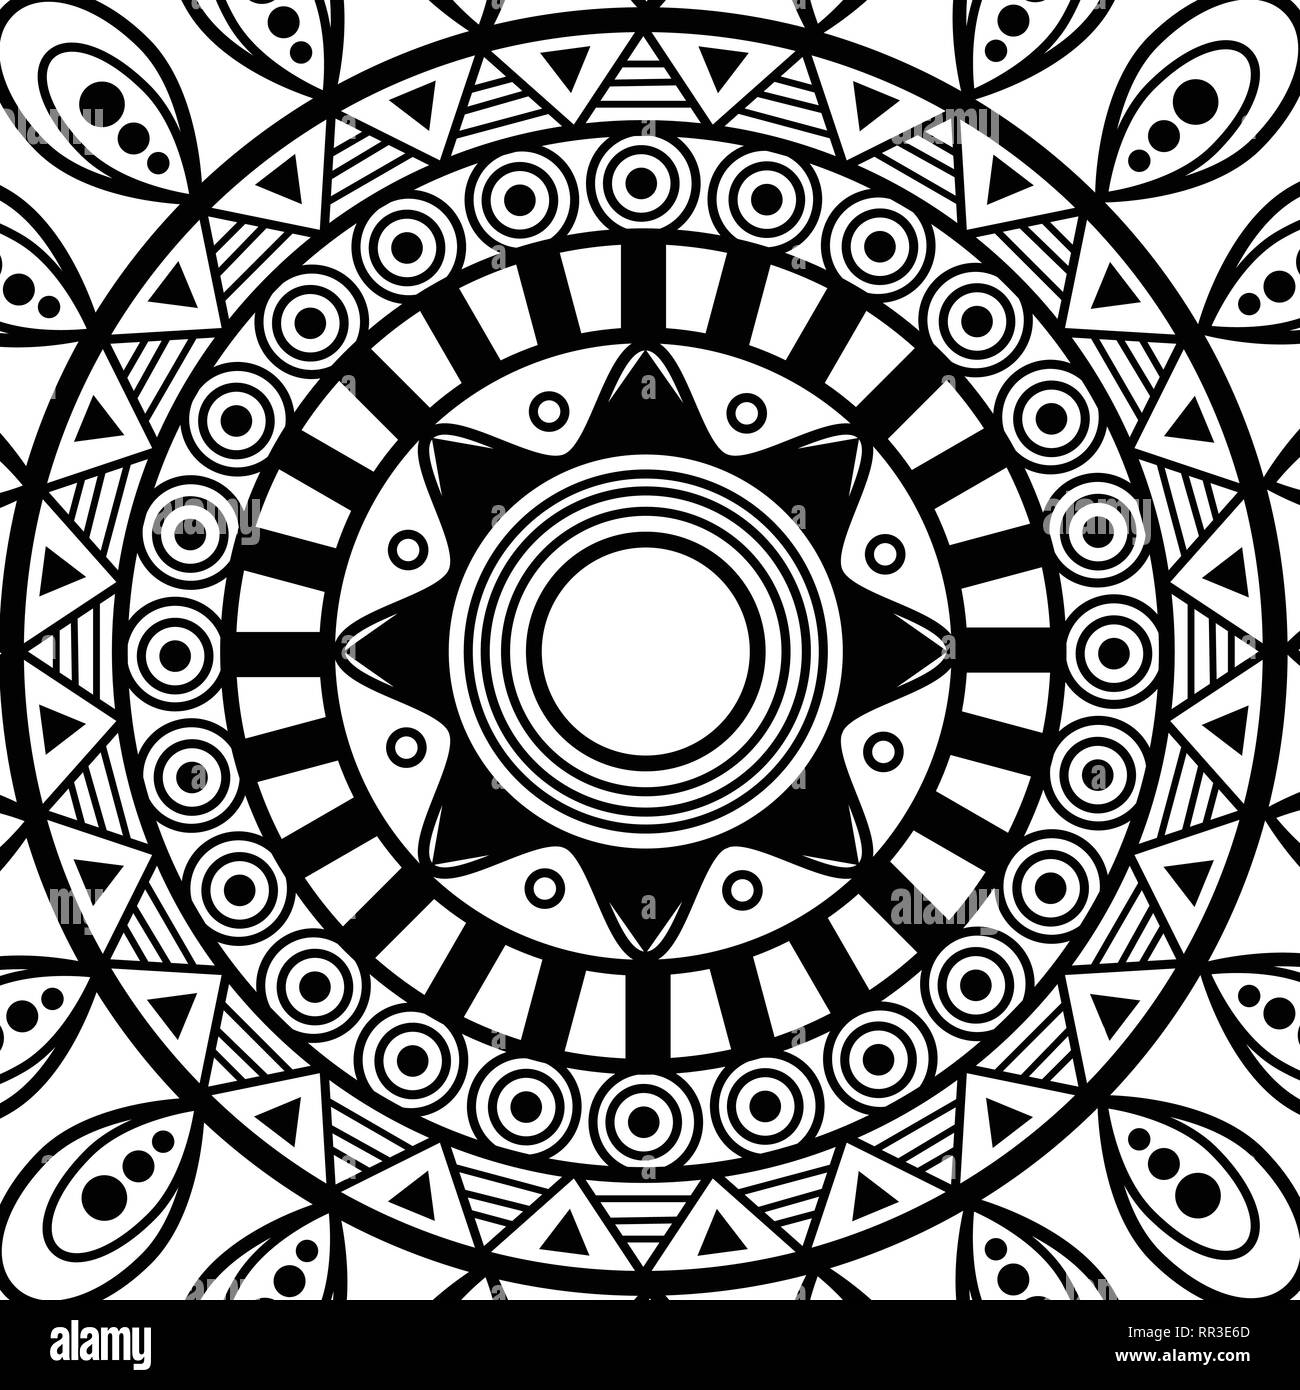 abstract. sentagle. isolate. vector. black and white - Stock Image